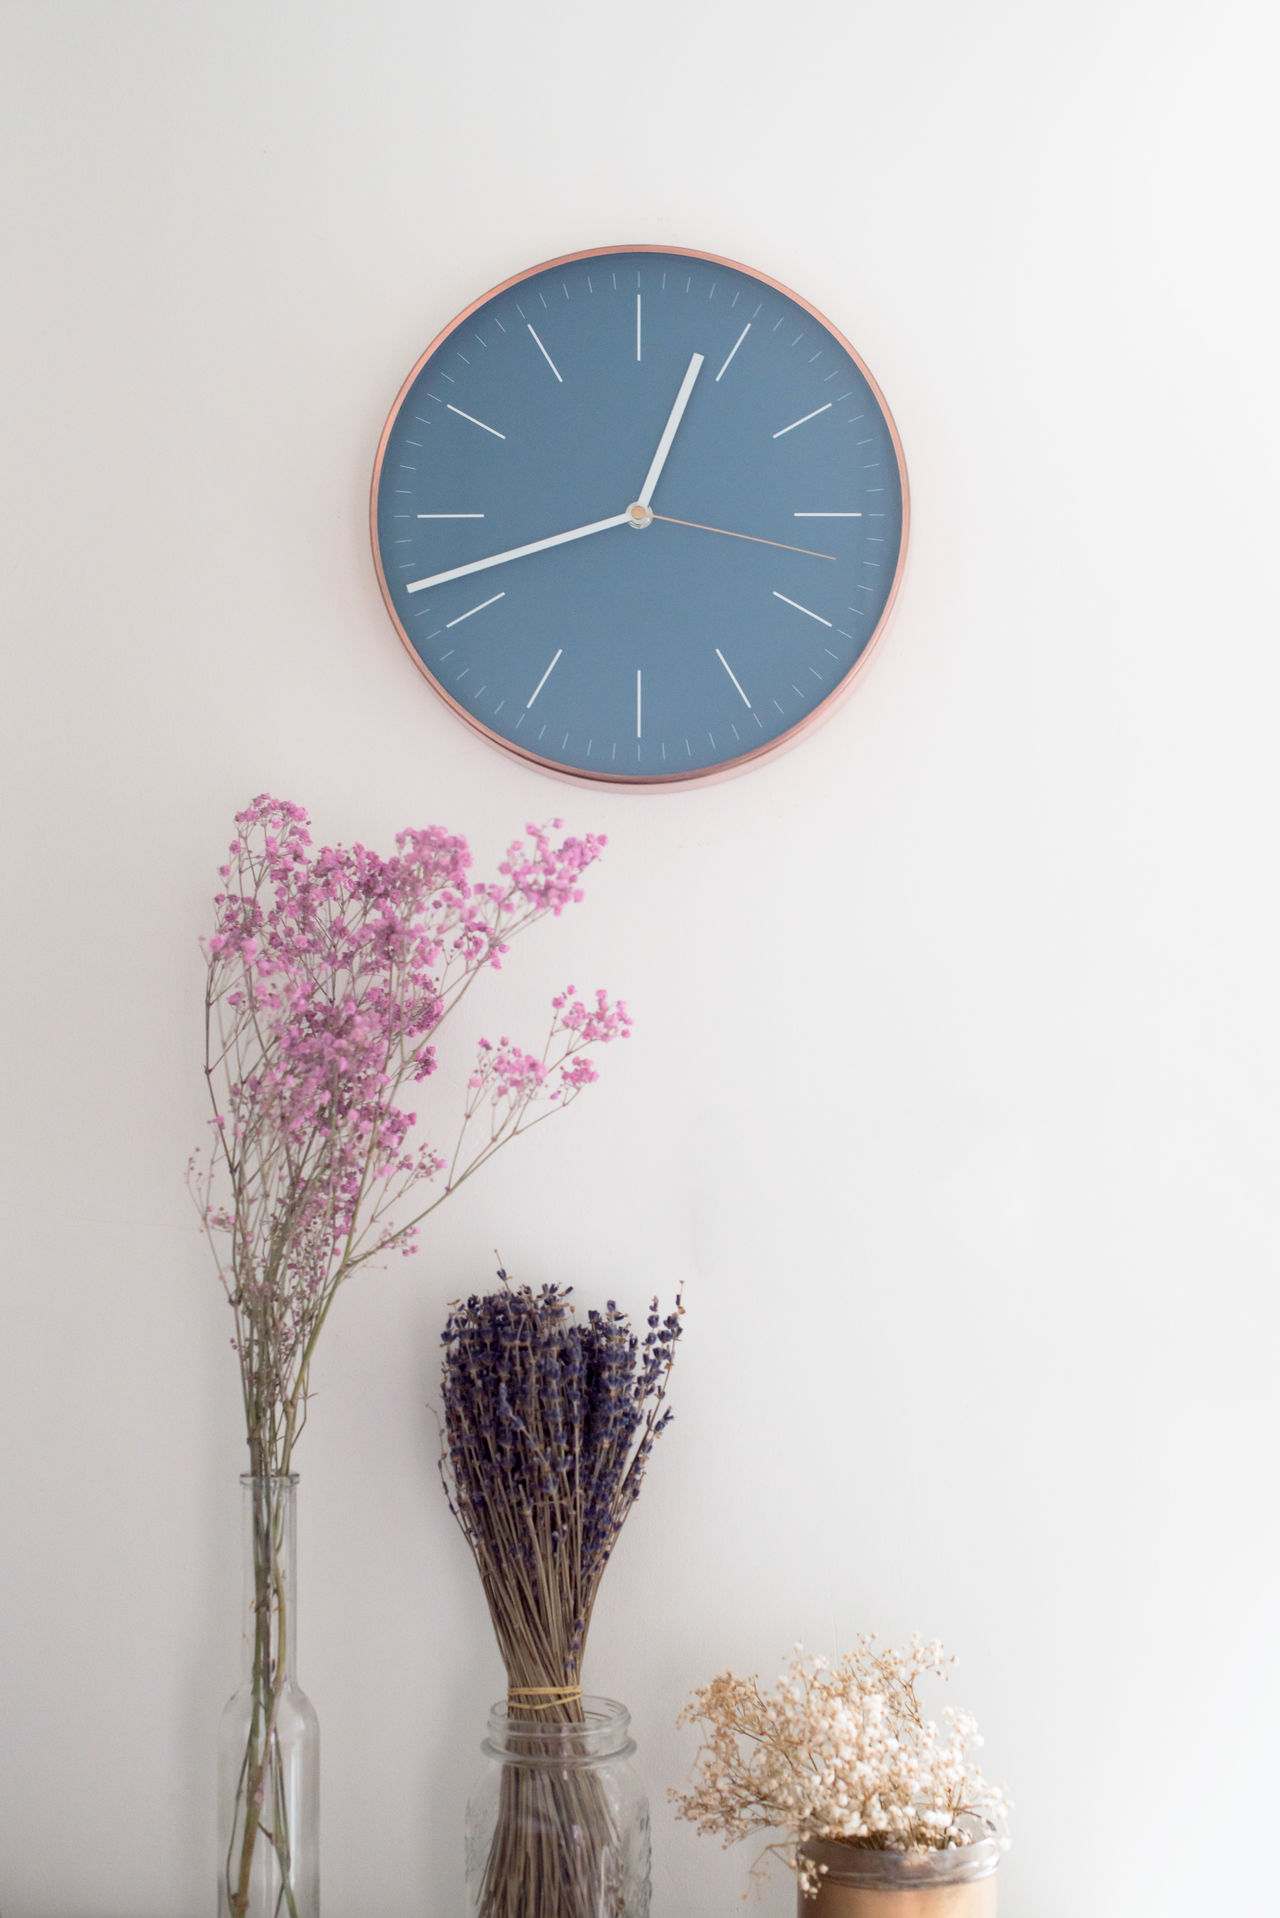 In love with my new noiseless kitchen clock <3 Clock Clock Face Copper  Day Flower Flower Head Hour Hand Indoors  Interior Interior Design Minute Hand No People Time White Background